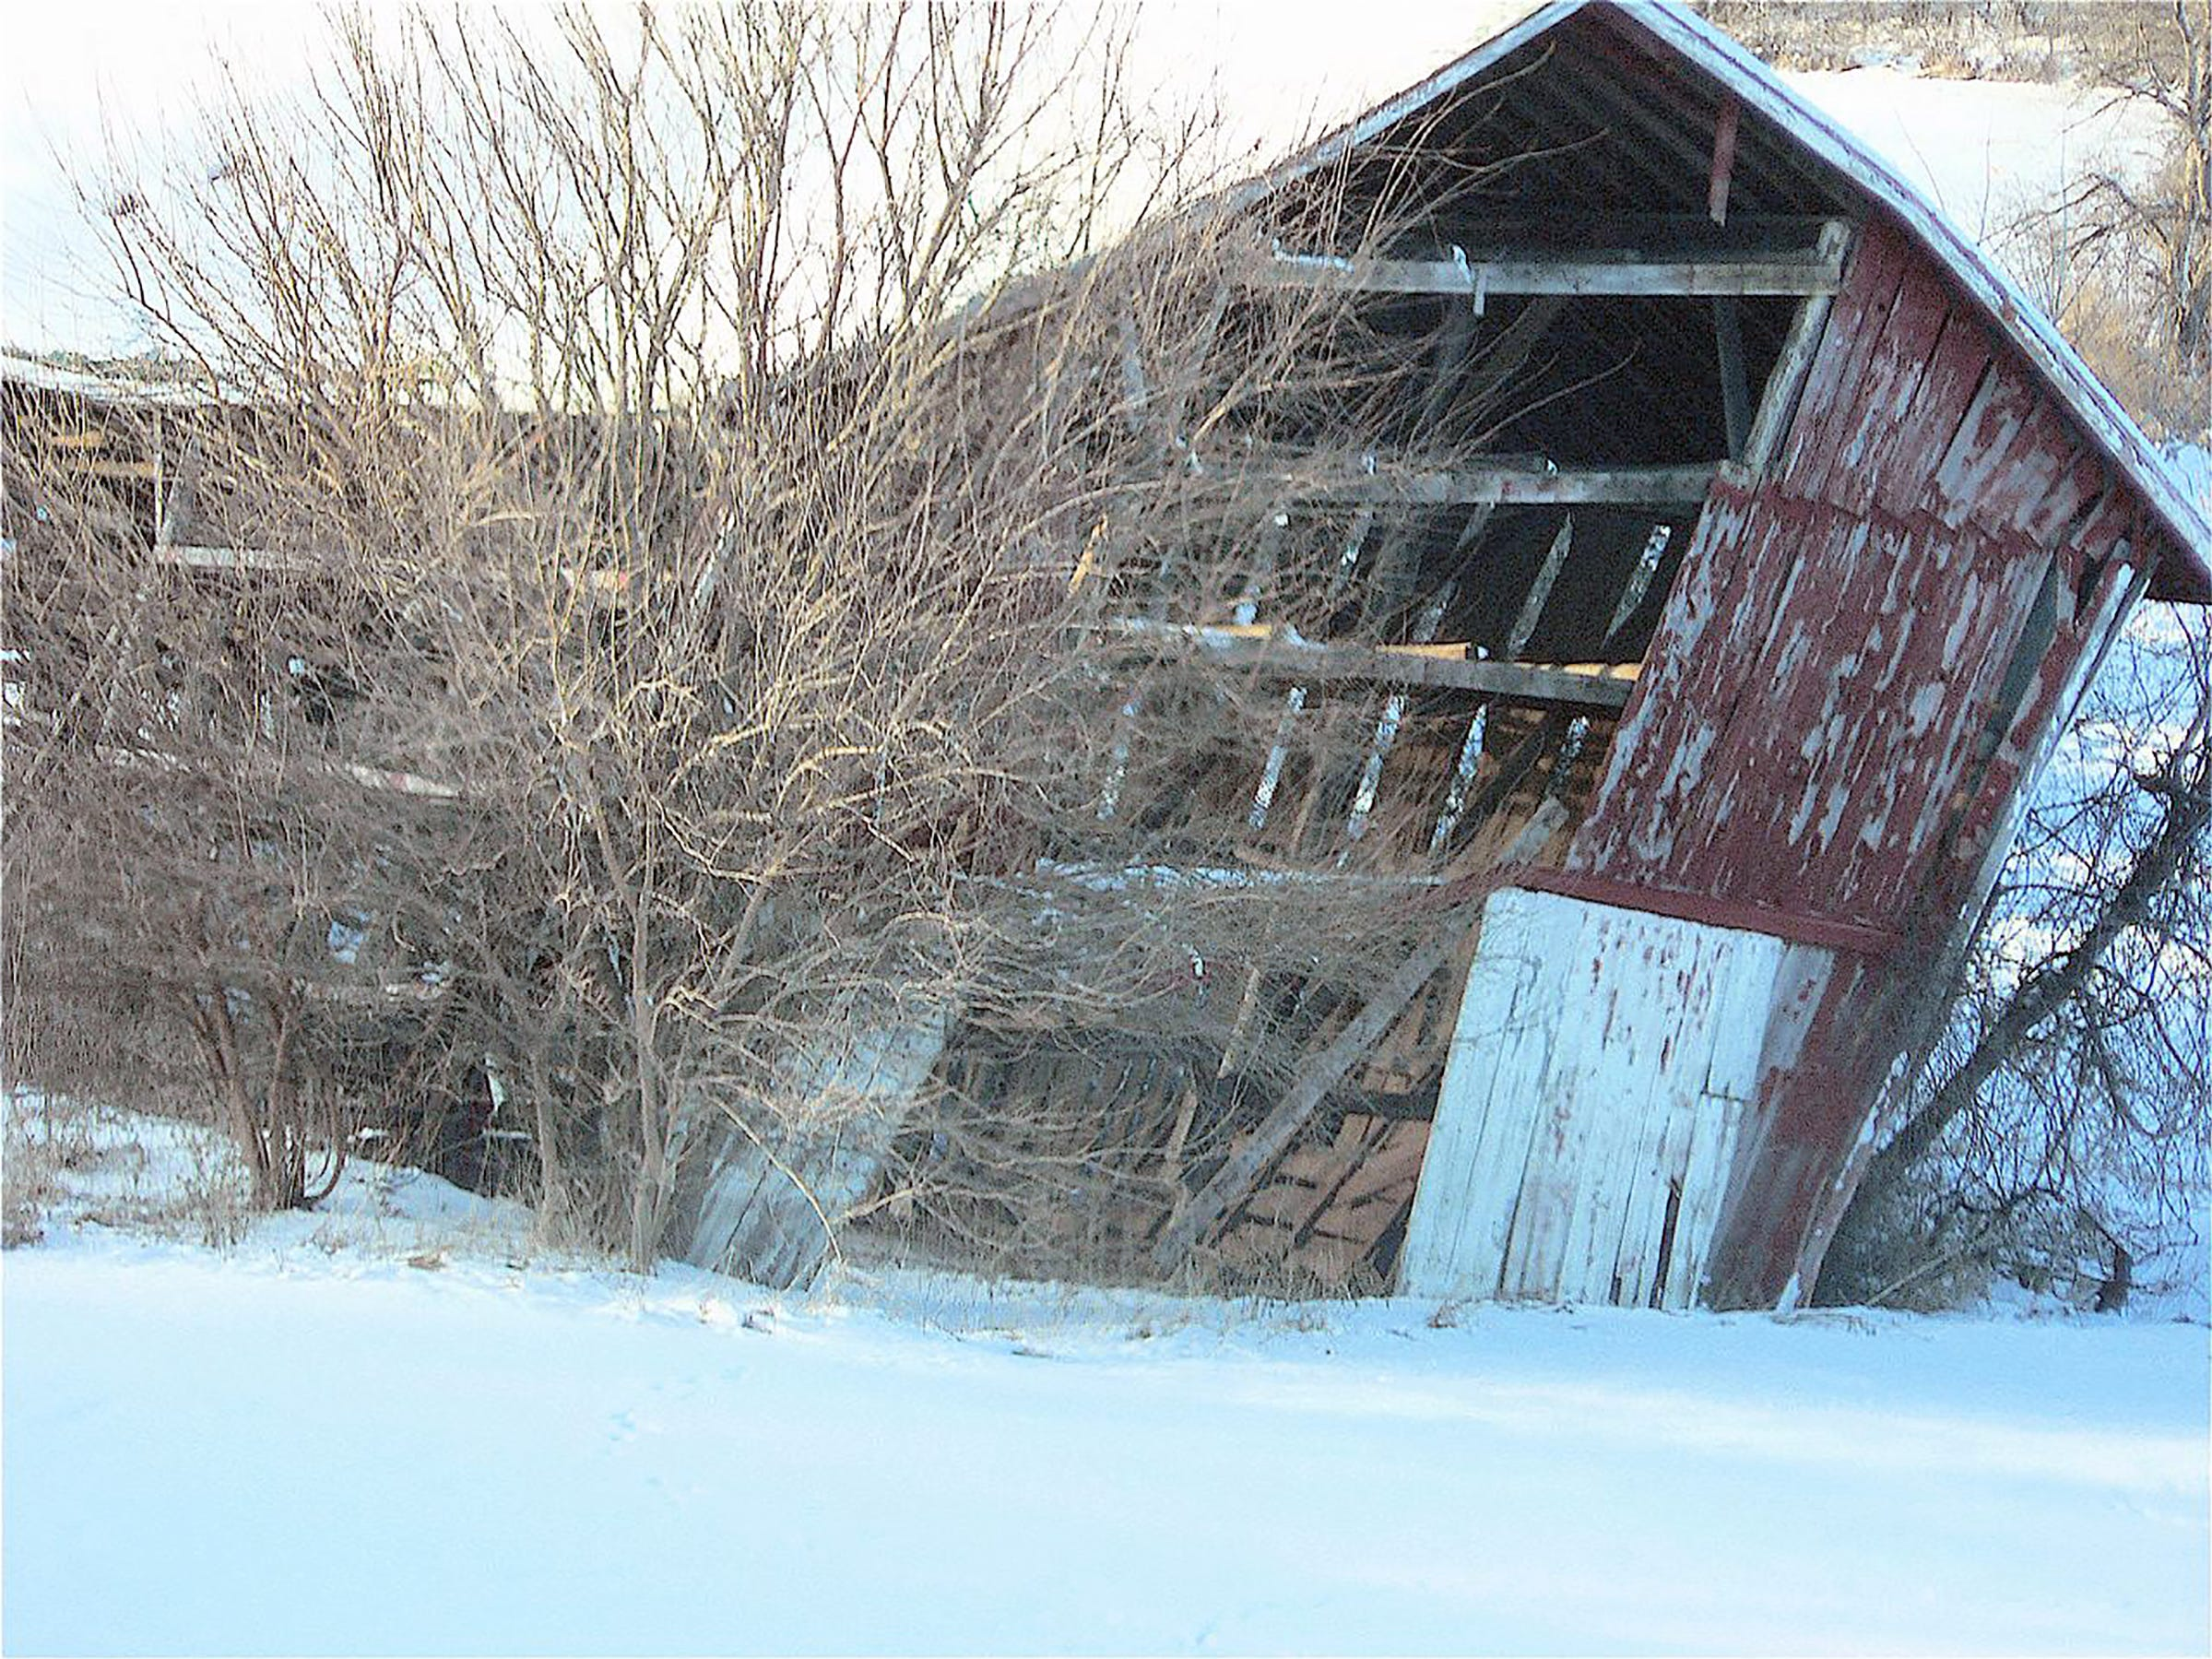 This old tobacco shed along Highway 12-18 east of Nora, has been gradually falling for years.